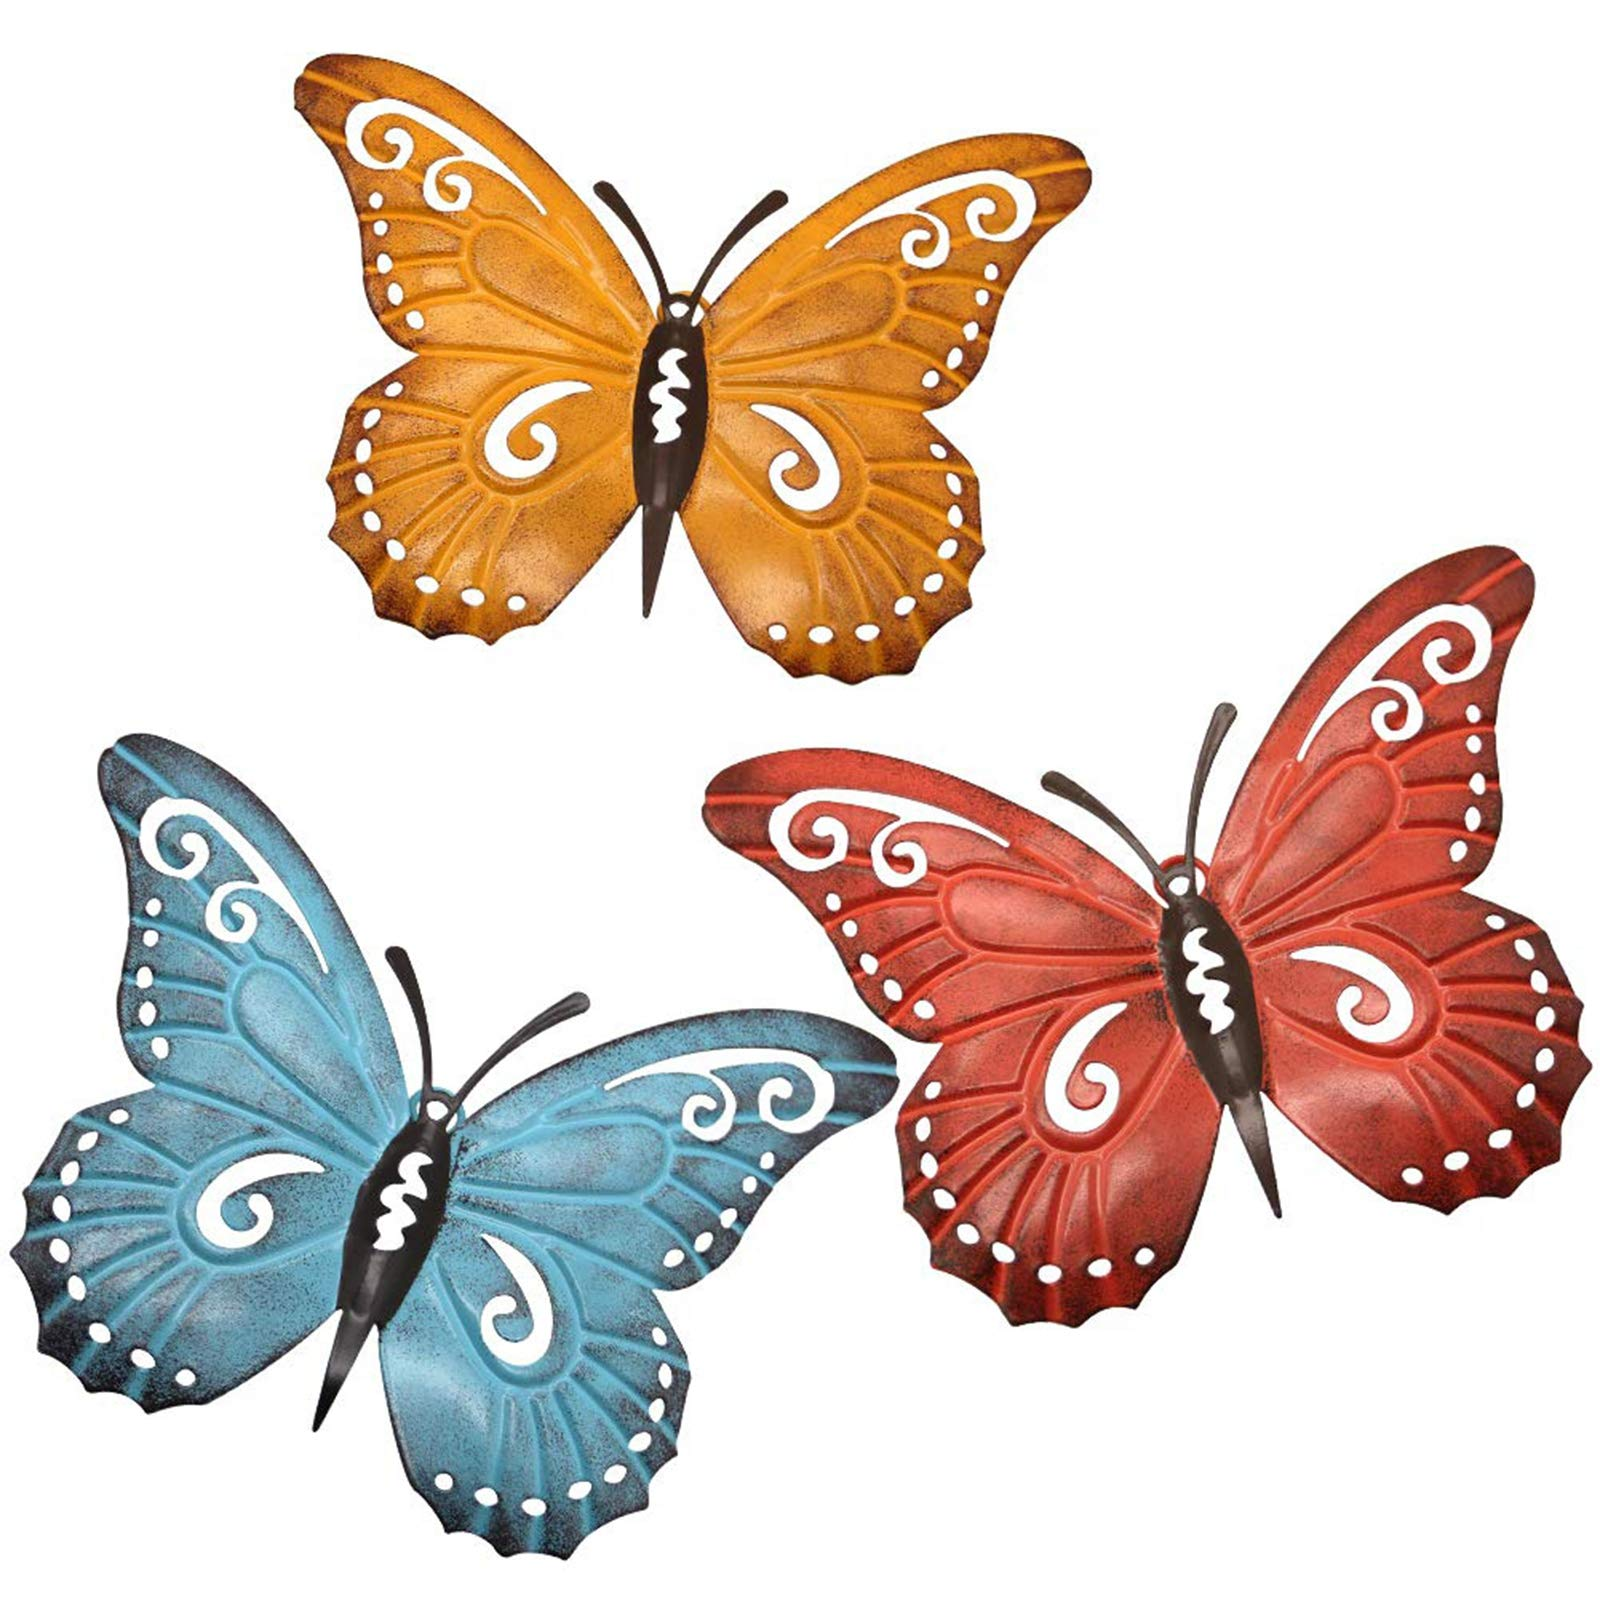 PROMOTION-50% OFF-Garden Yard Decoration Butterfly